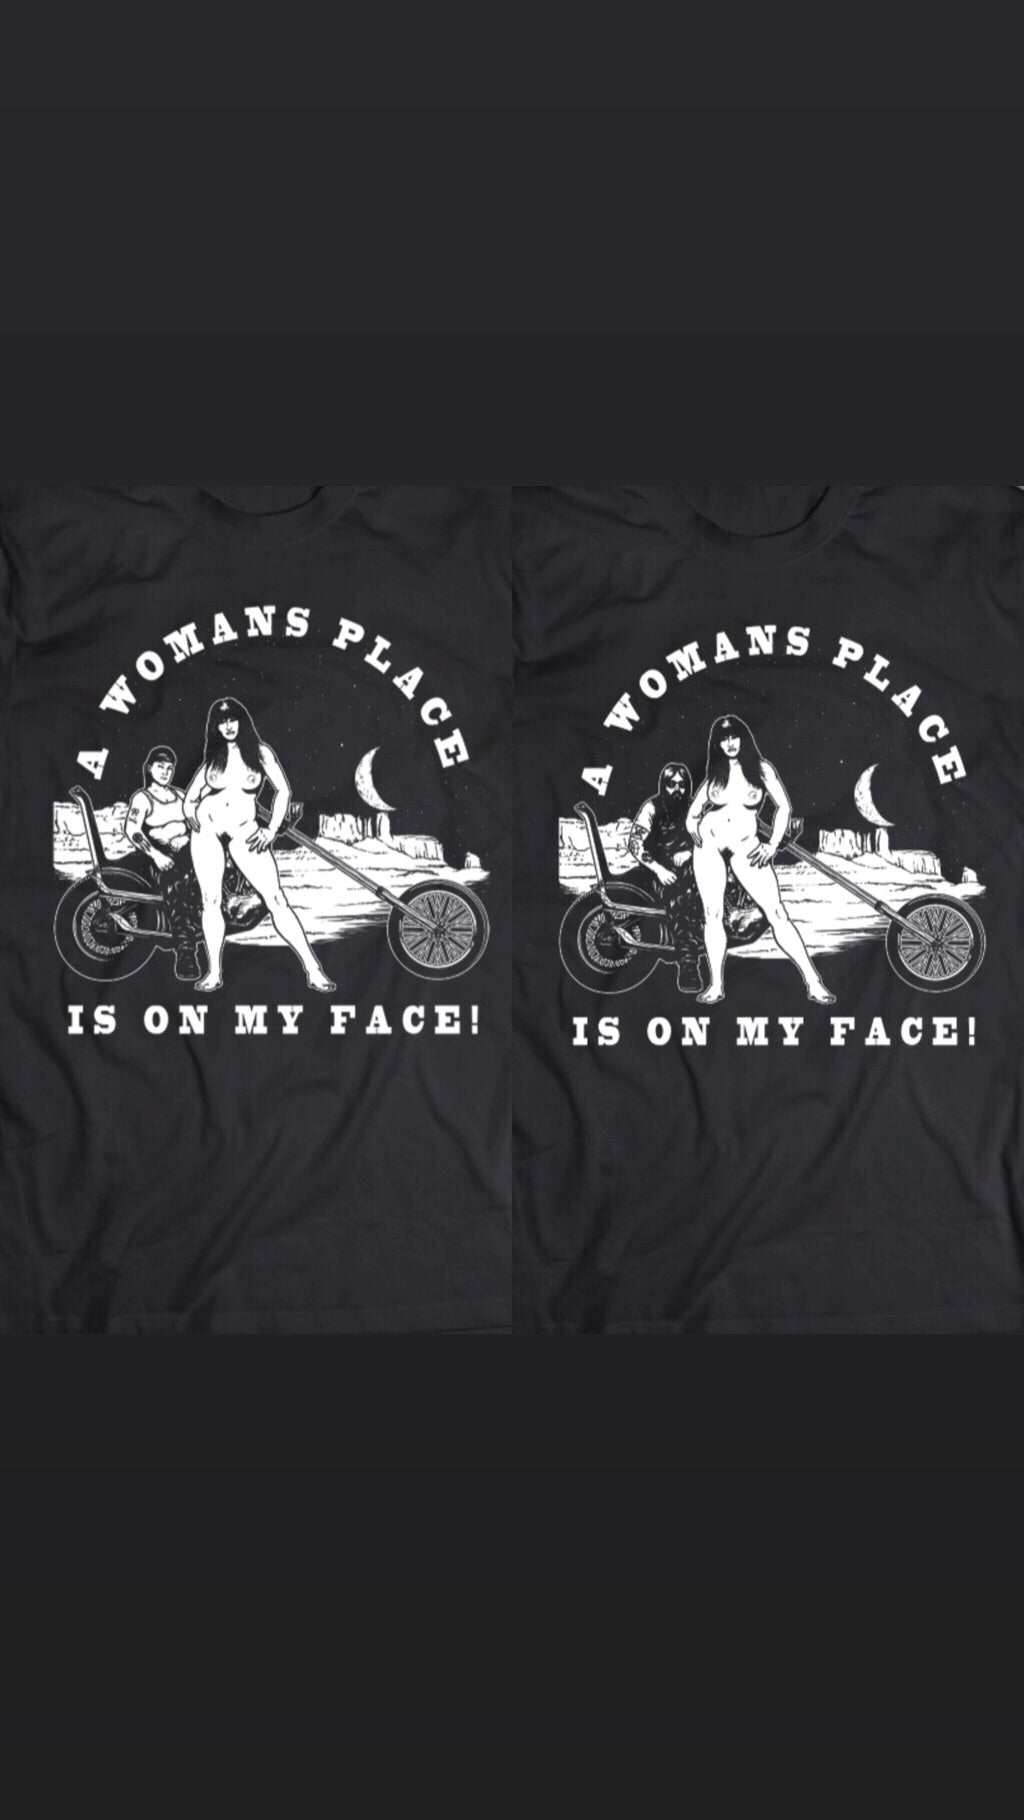 Woman's place tee